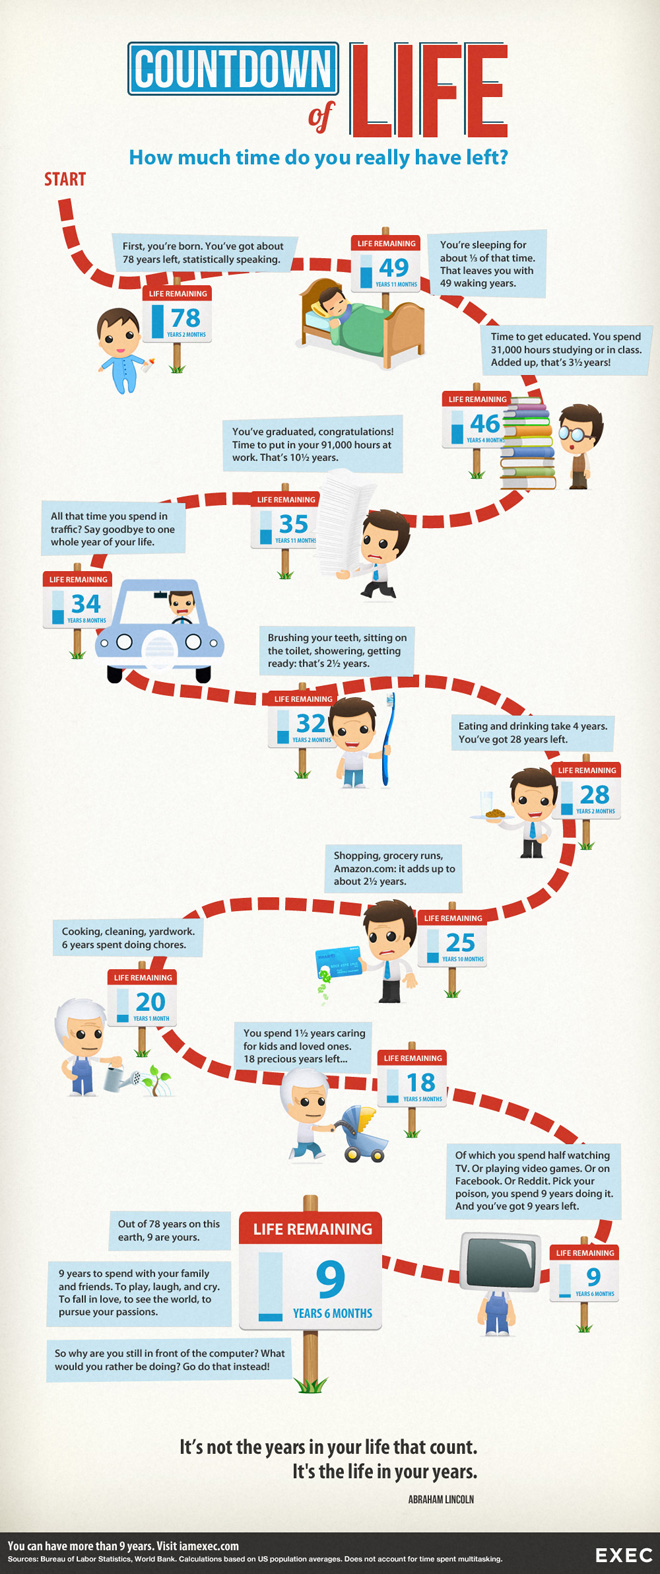 View Exec's Infographic: Countdown of Life